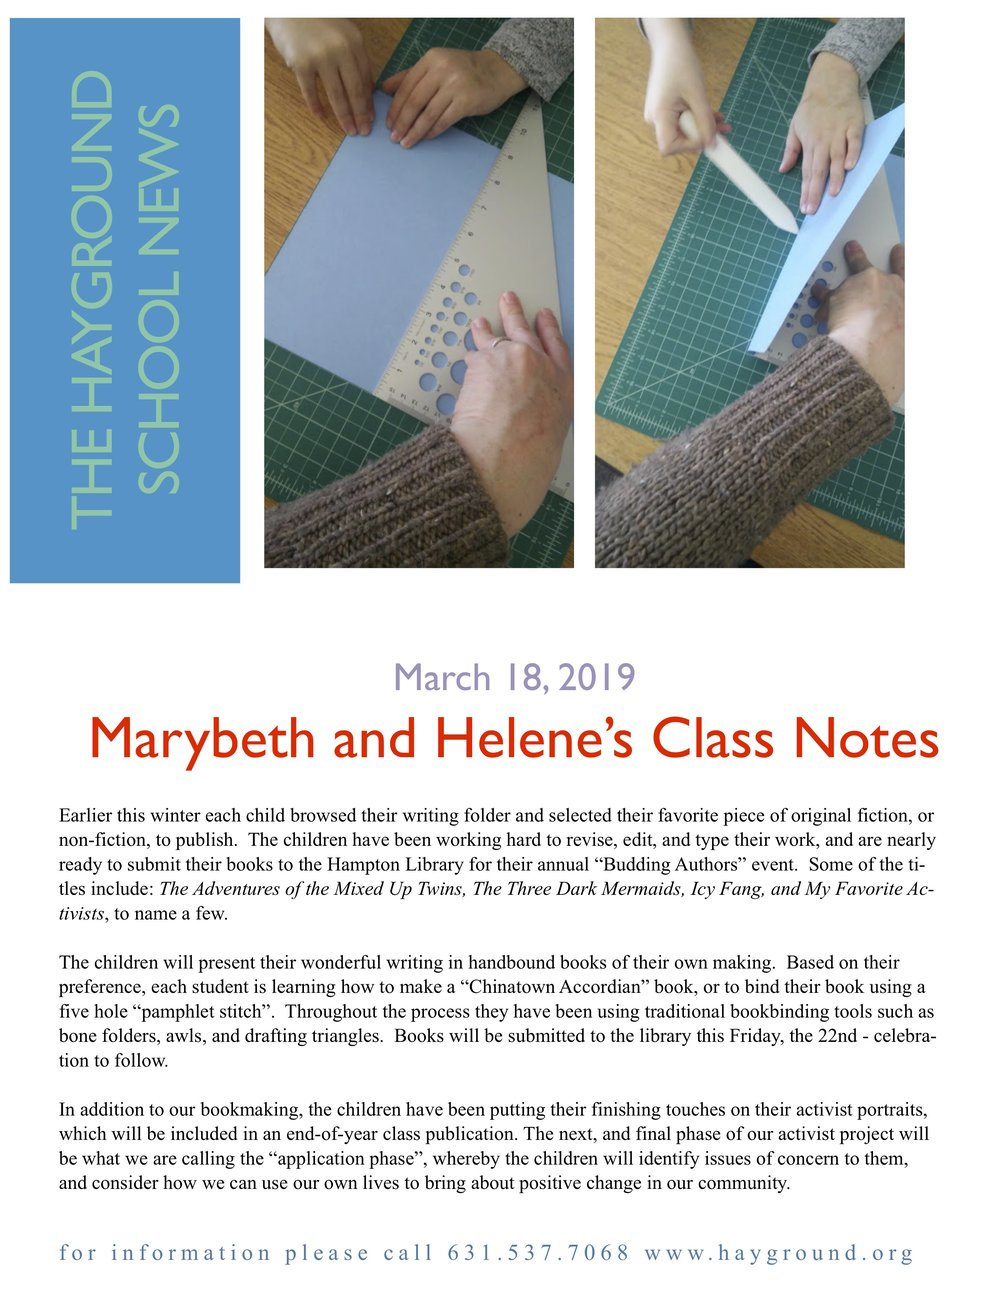 Class Notes March 18, 2019 copy.jpg